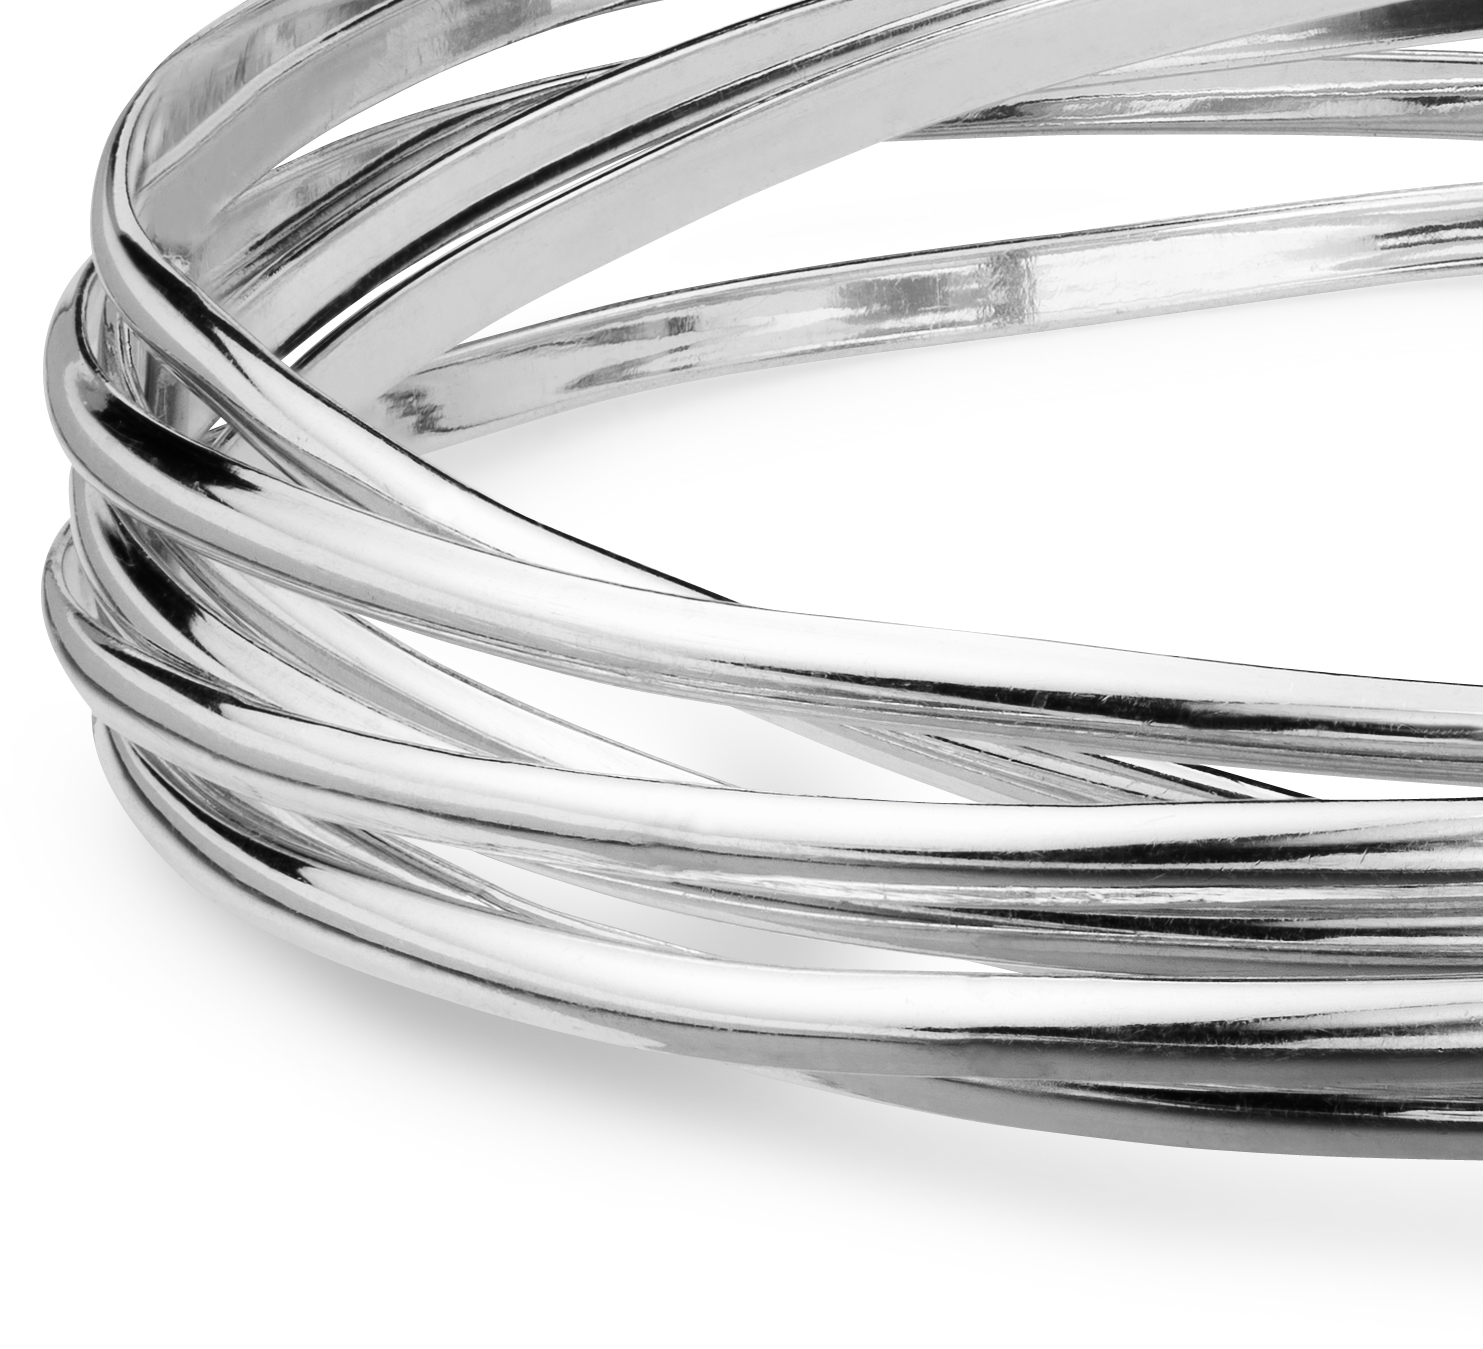 Interlocking Bangle Bracelets in Sterling Silver